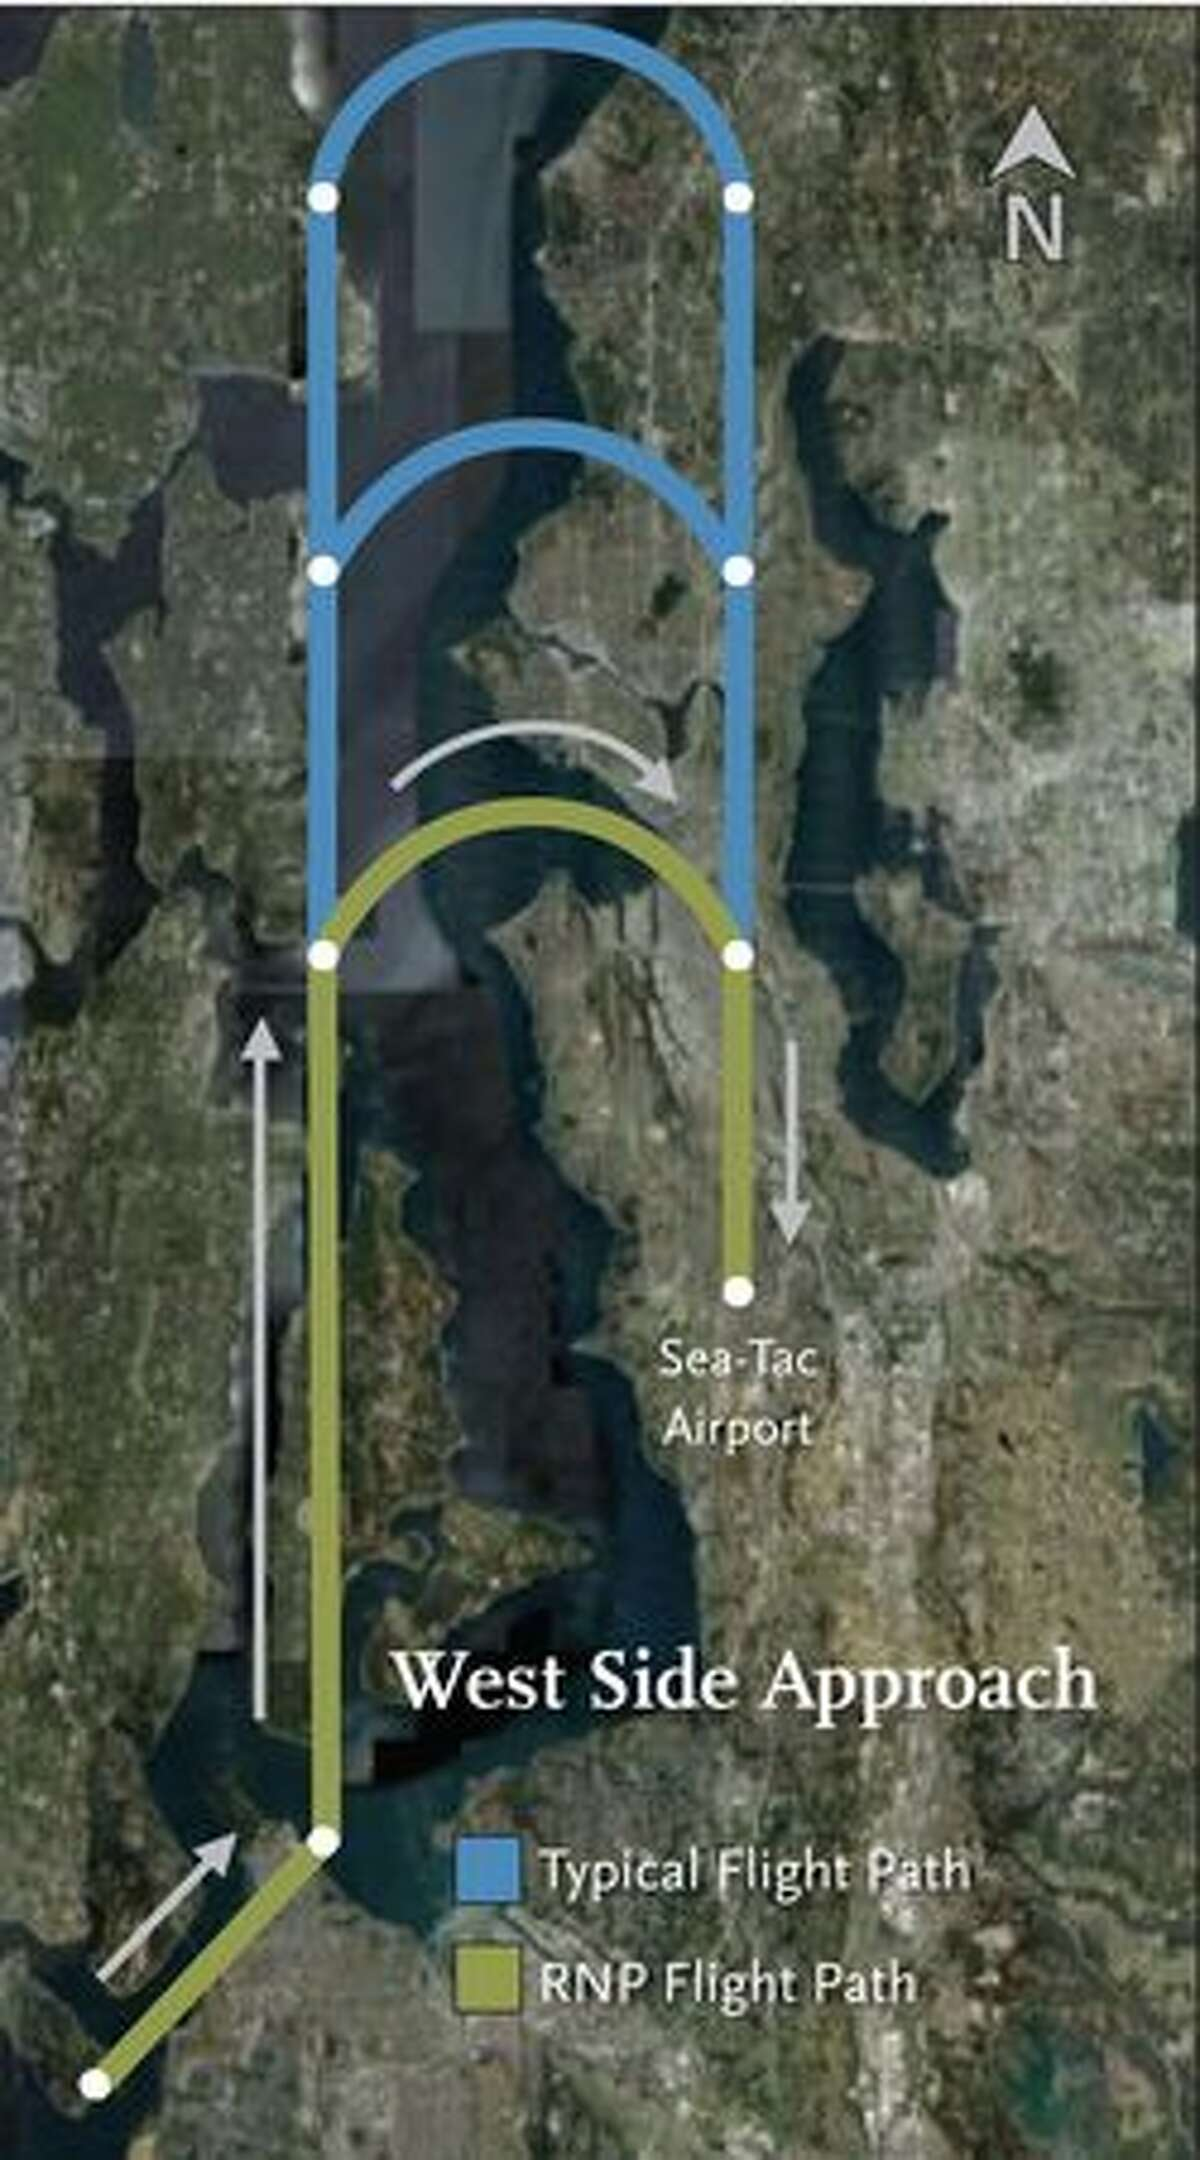 West side approach flight paths to Seattle-Tacoma International Airport with and without RNP (Alaska Airlines image)